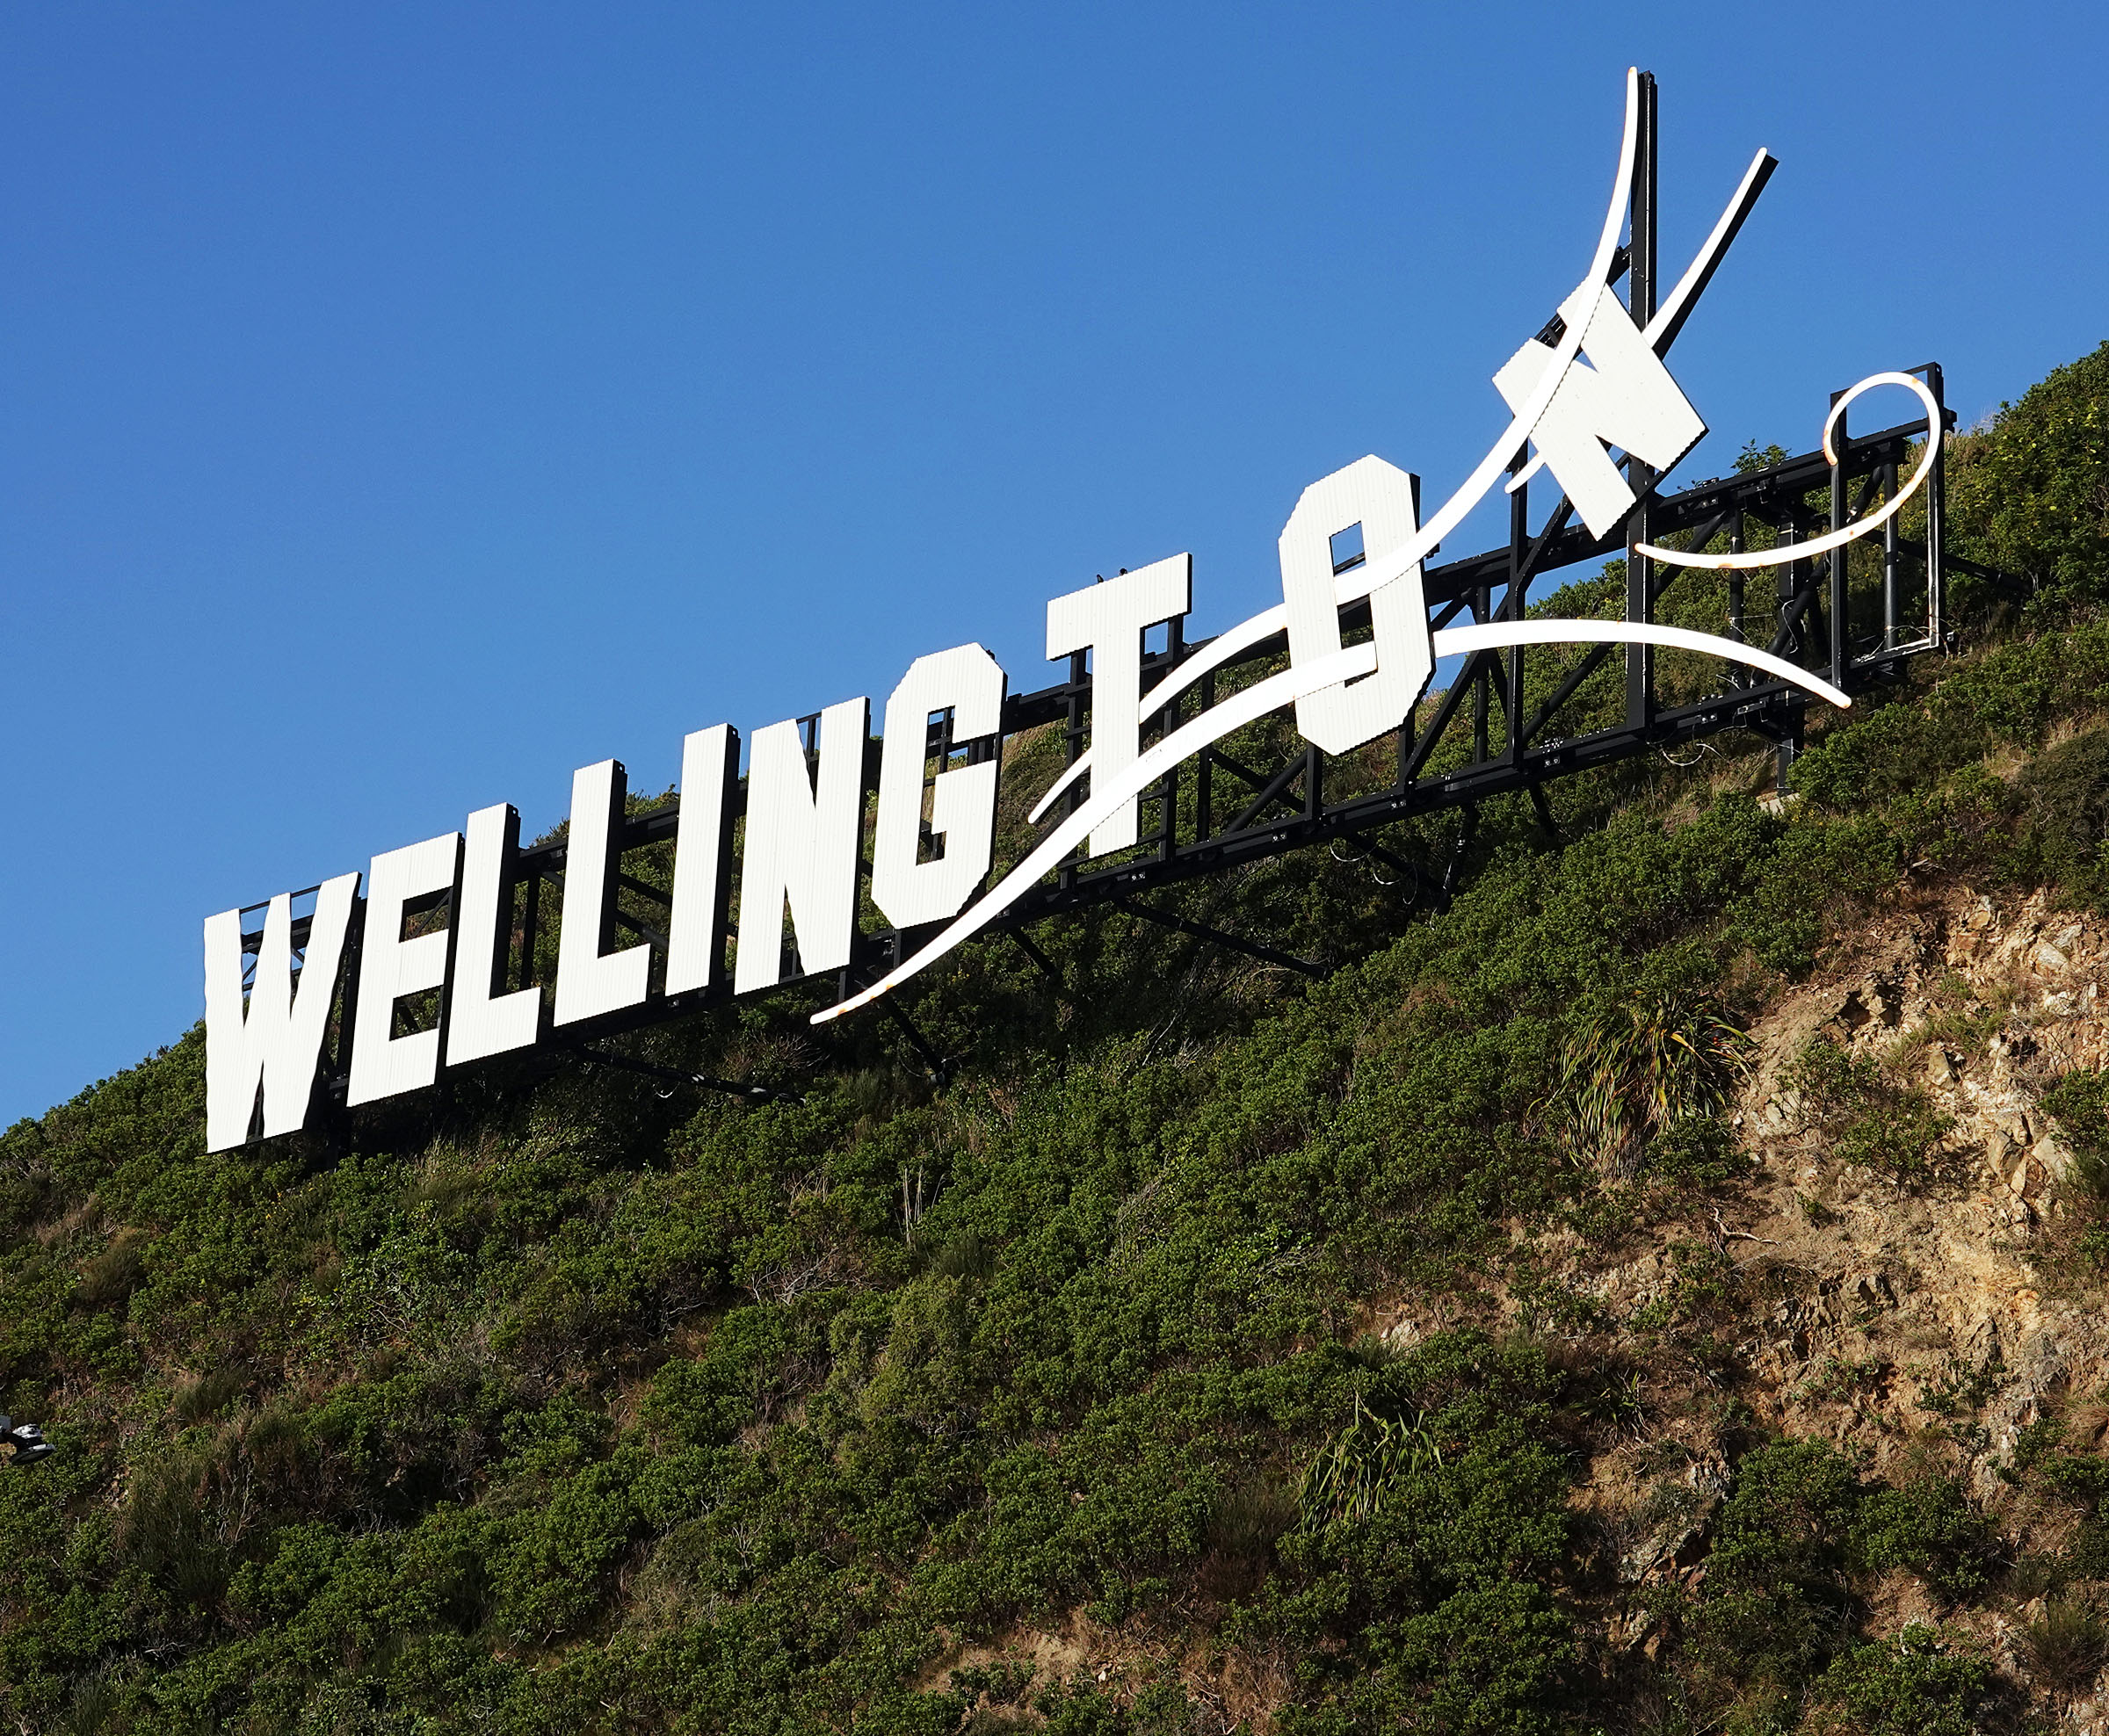 A sign welcomes visitors to Wellington, New Zealand, on Sunday, May 19, 2019.